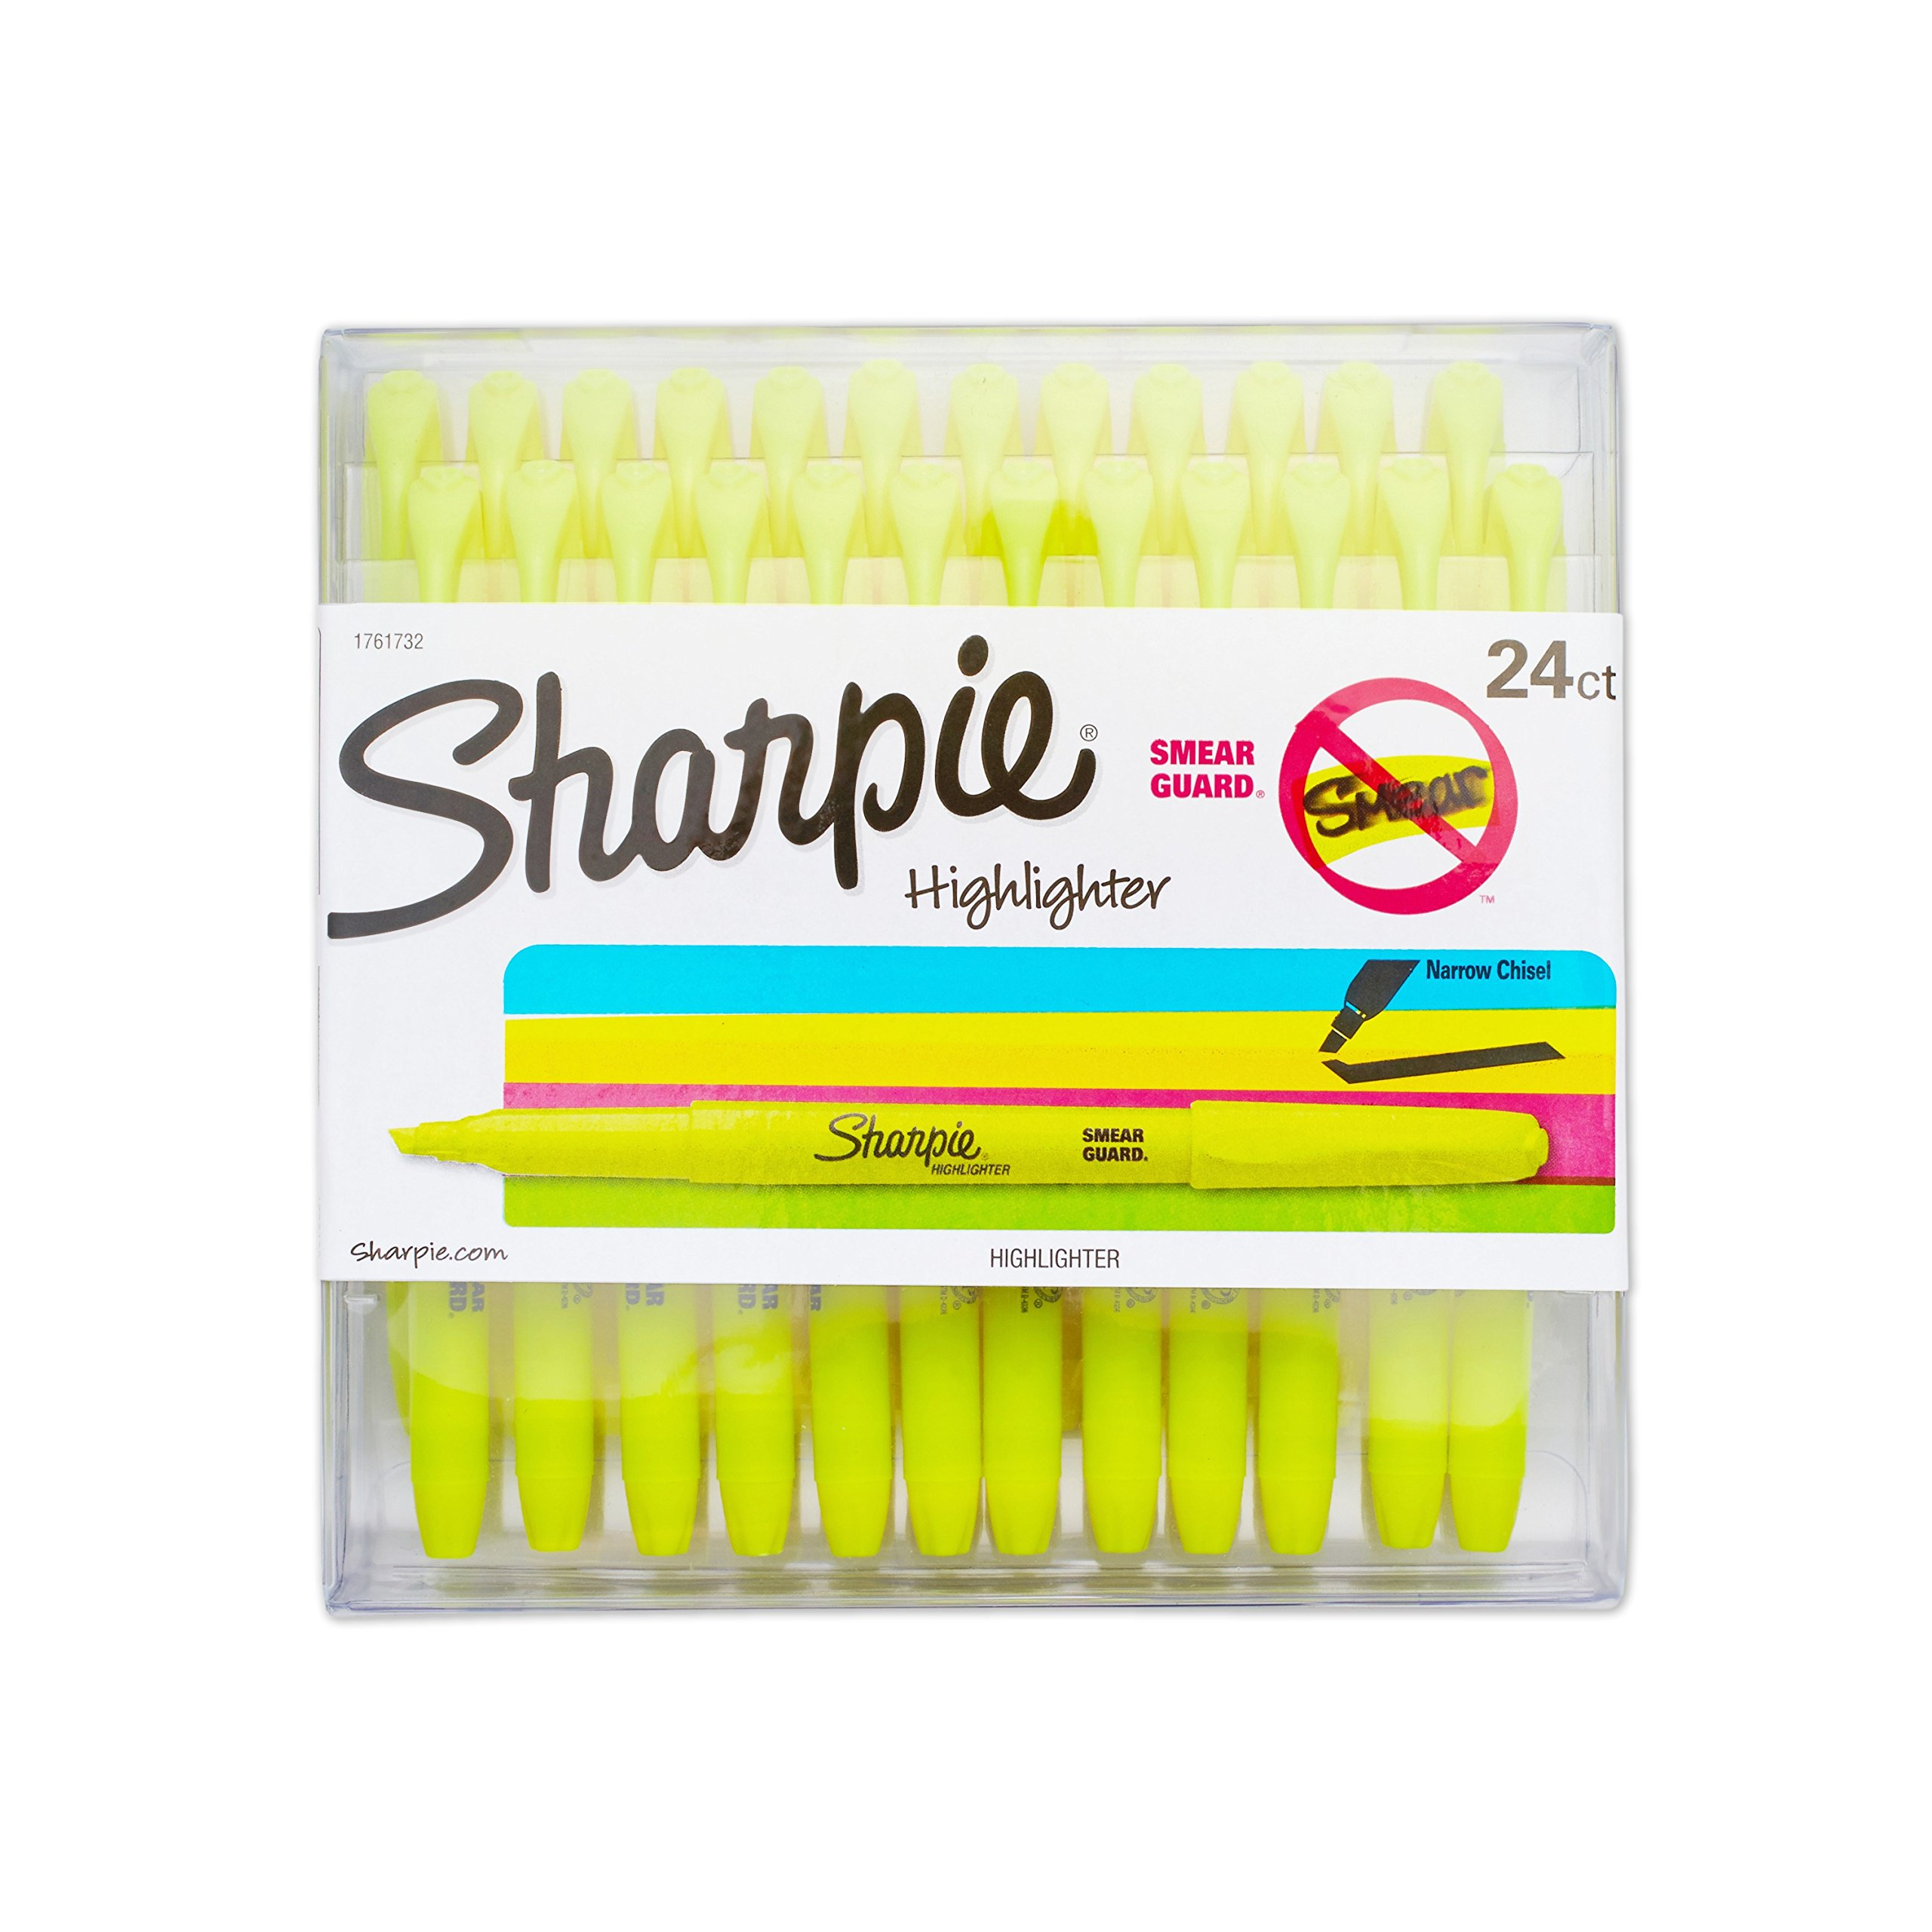 Sharpie 1761732 Accent Pocket Style Highlighter, Fluorescent Yellow, 24-Pack by Sharpie (Image #1)